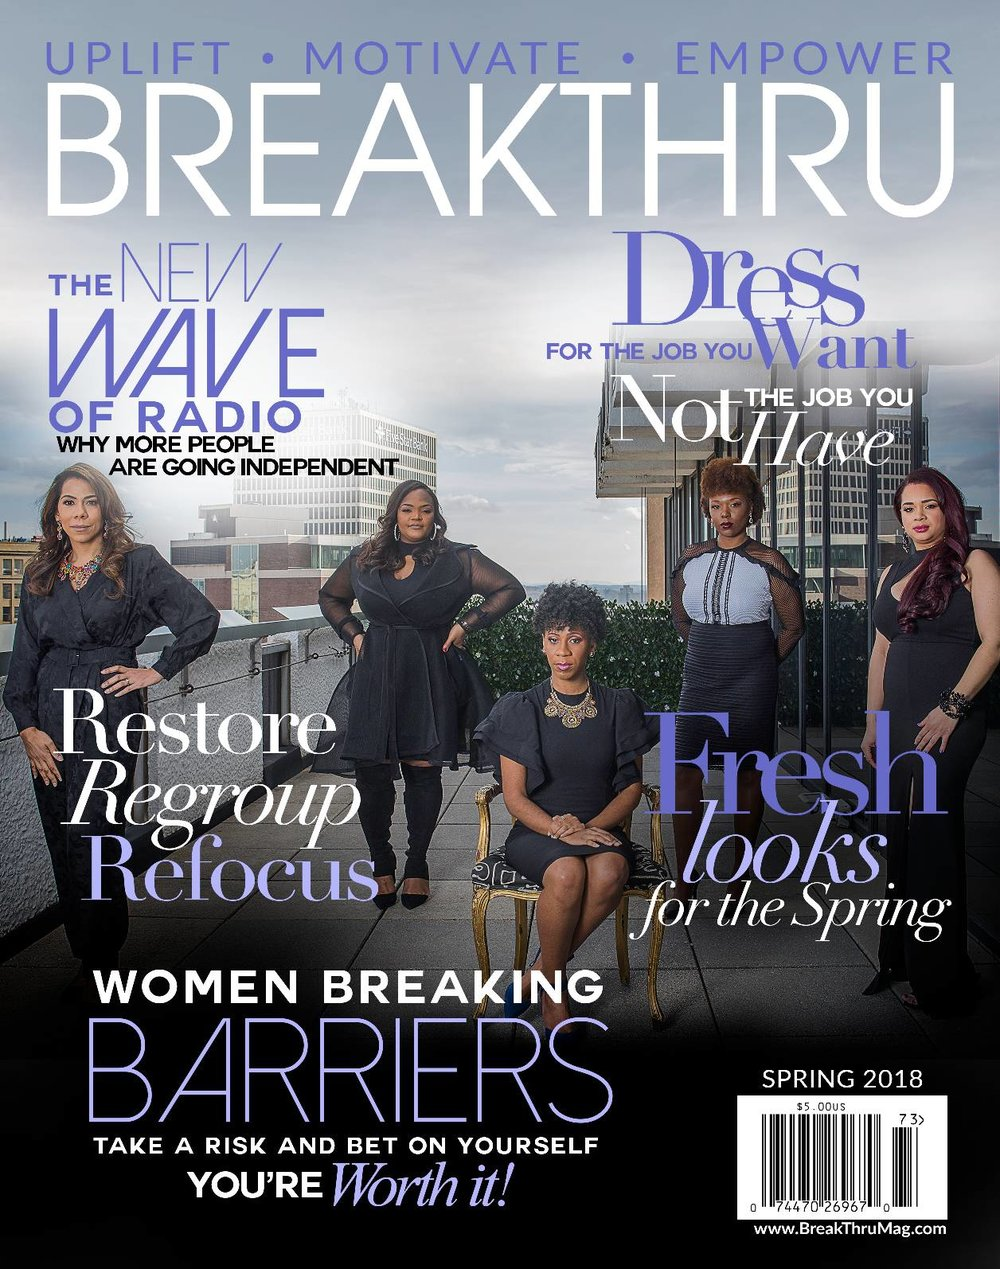 BreakThru Magazine Cover.jpg